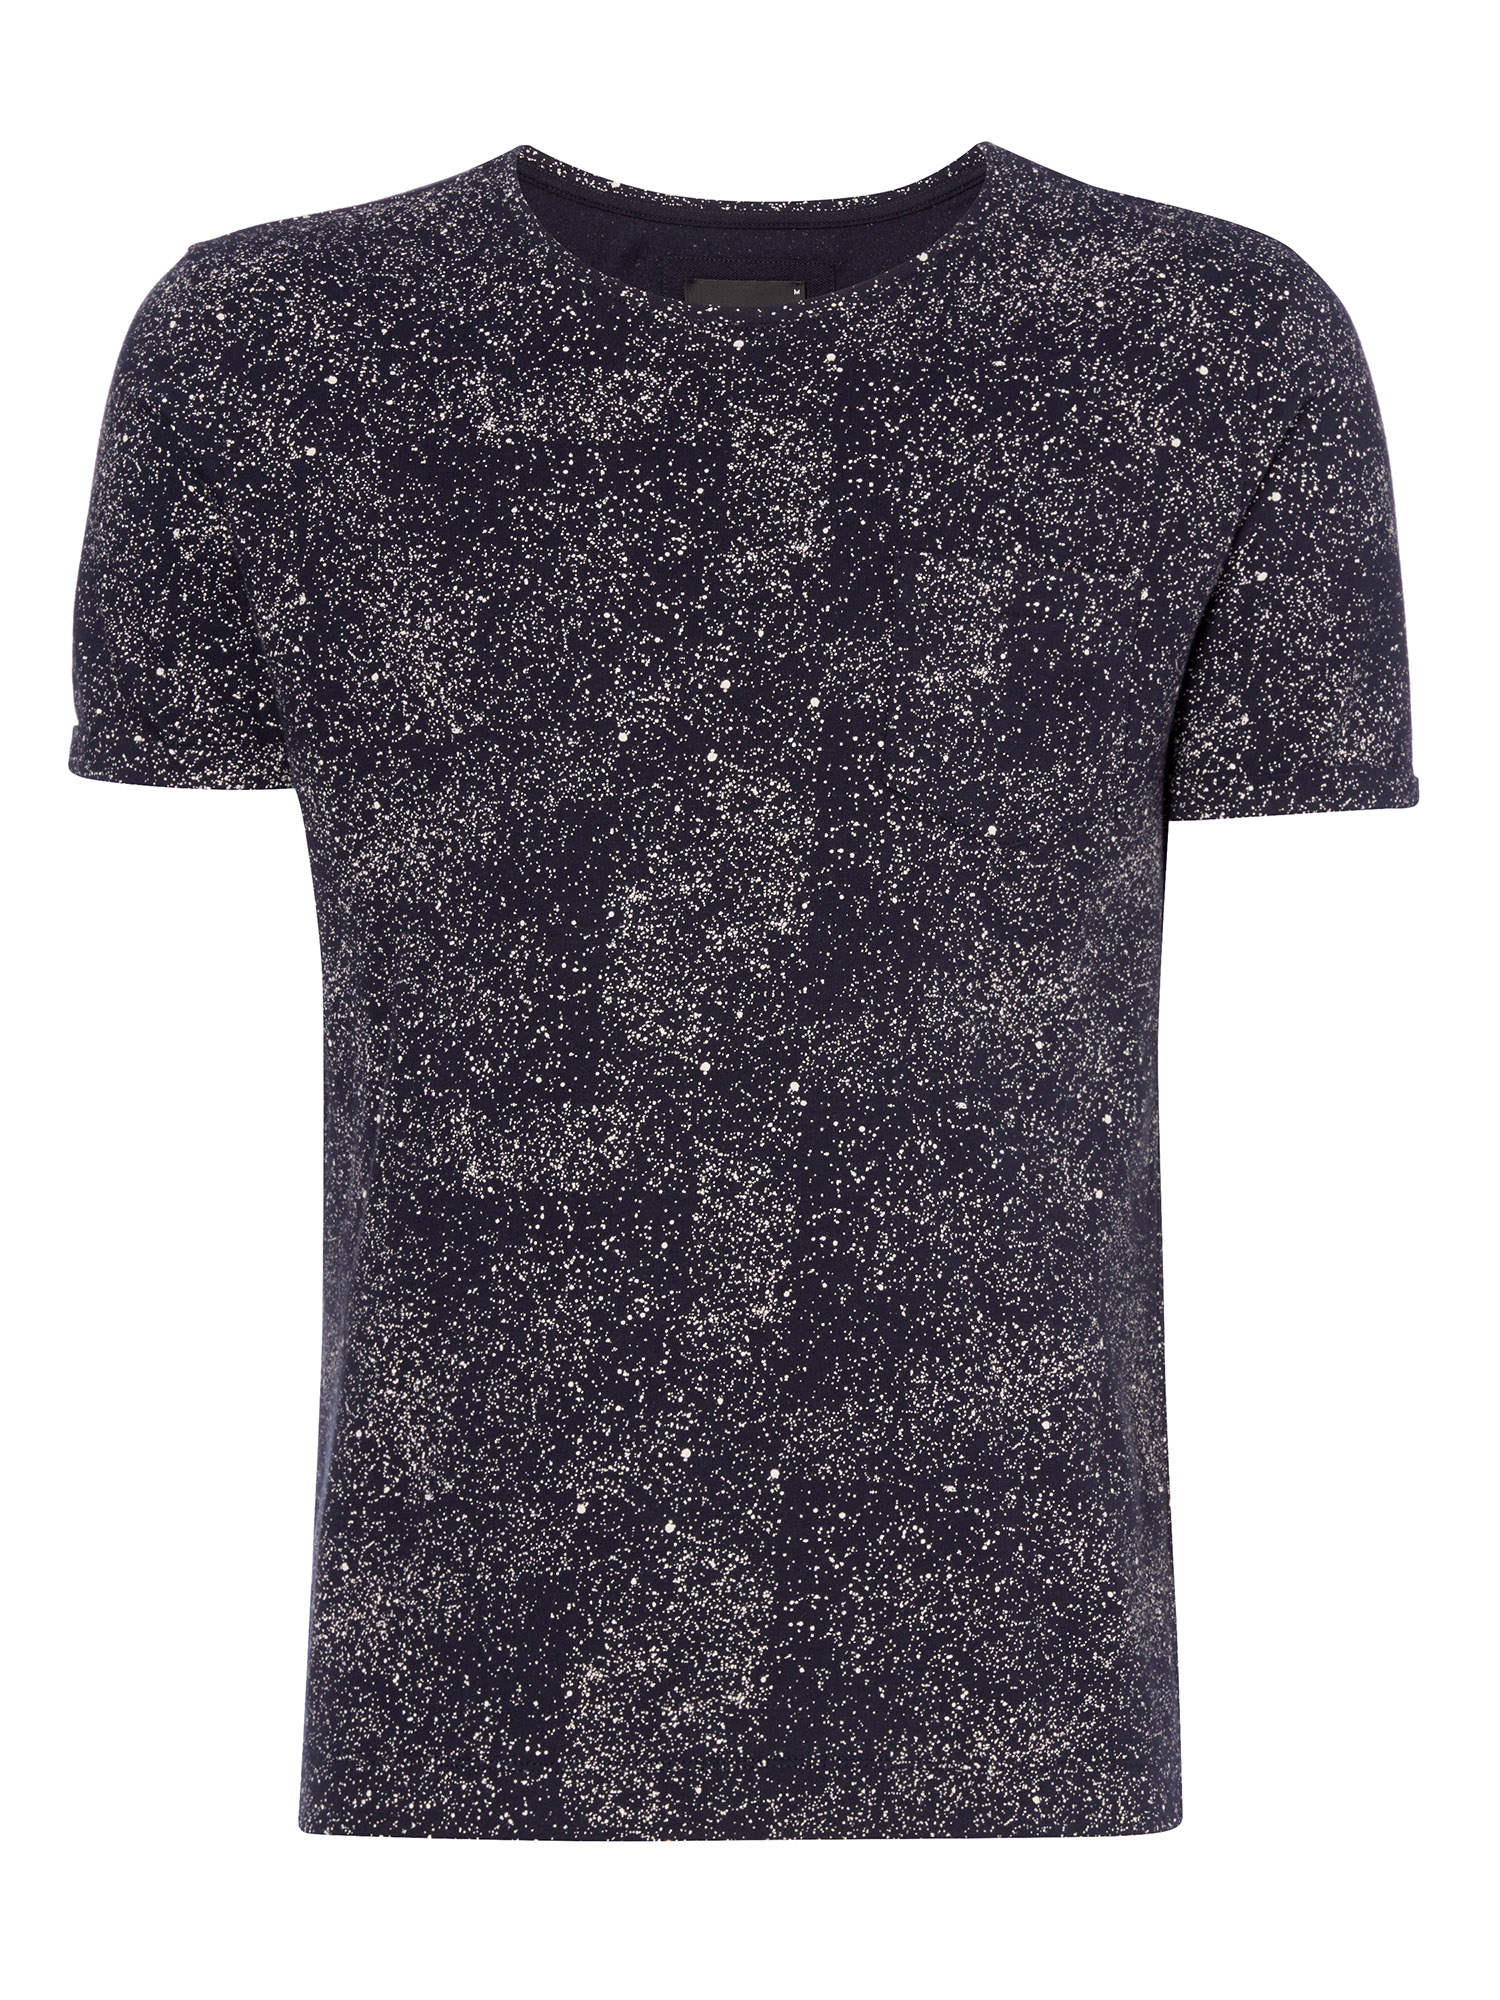 Tapered fit printed cotton t-shirt